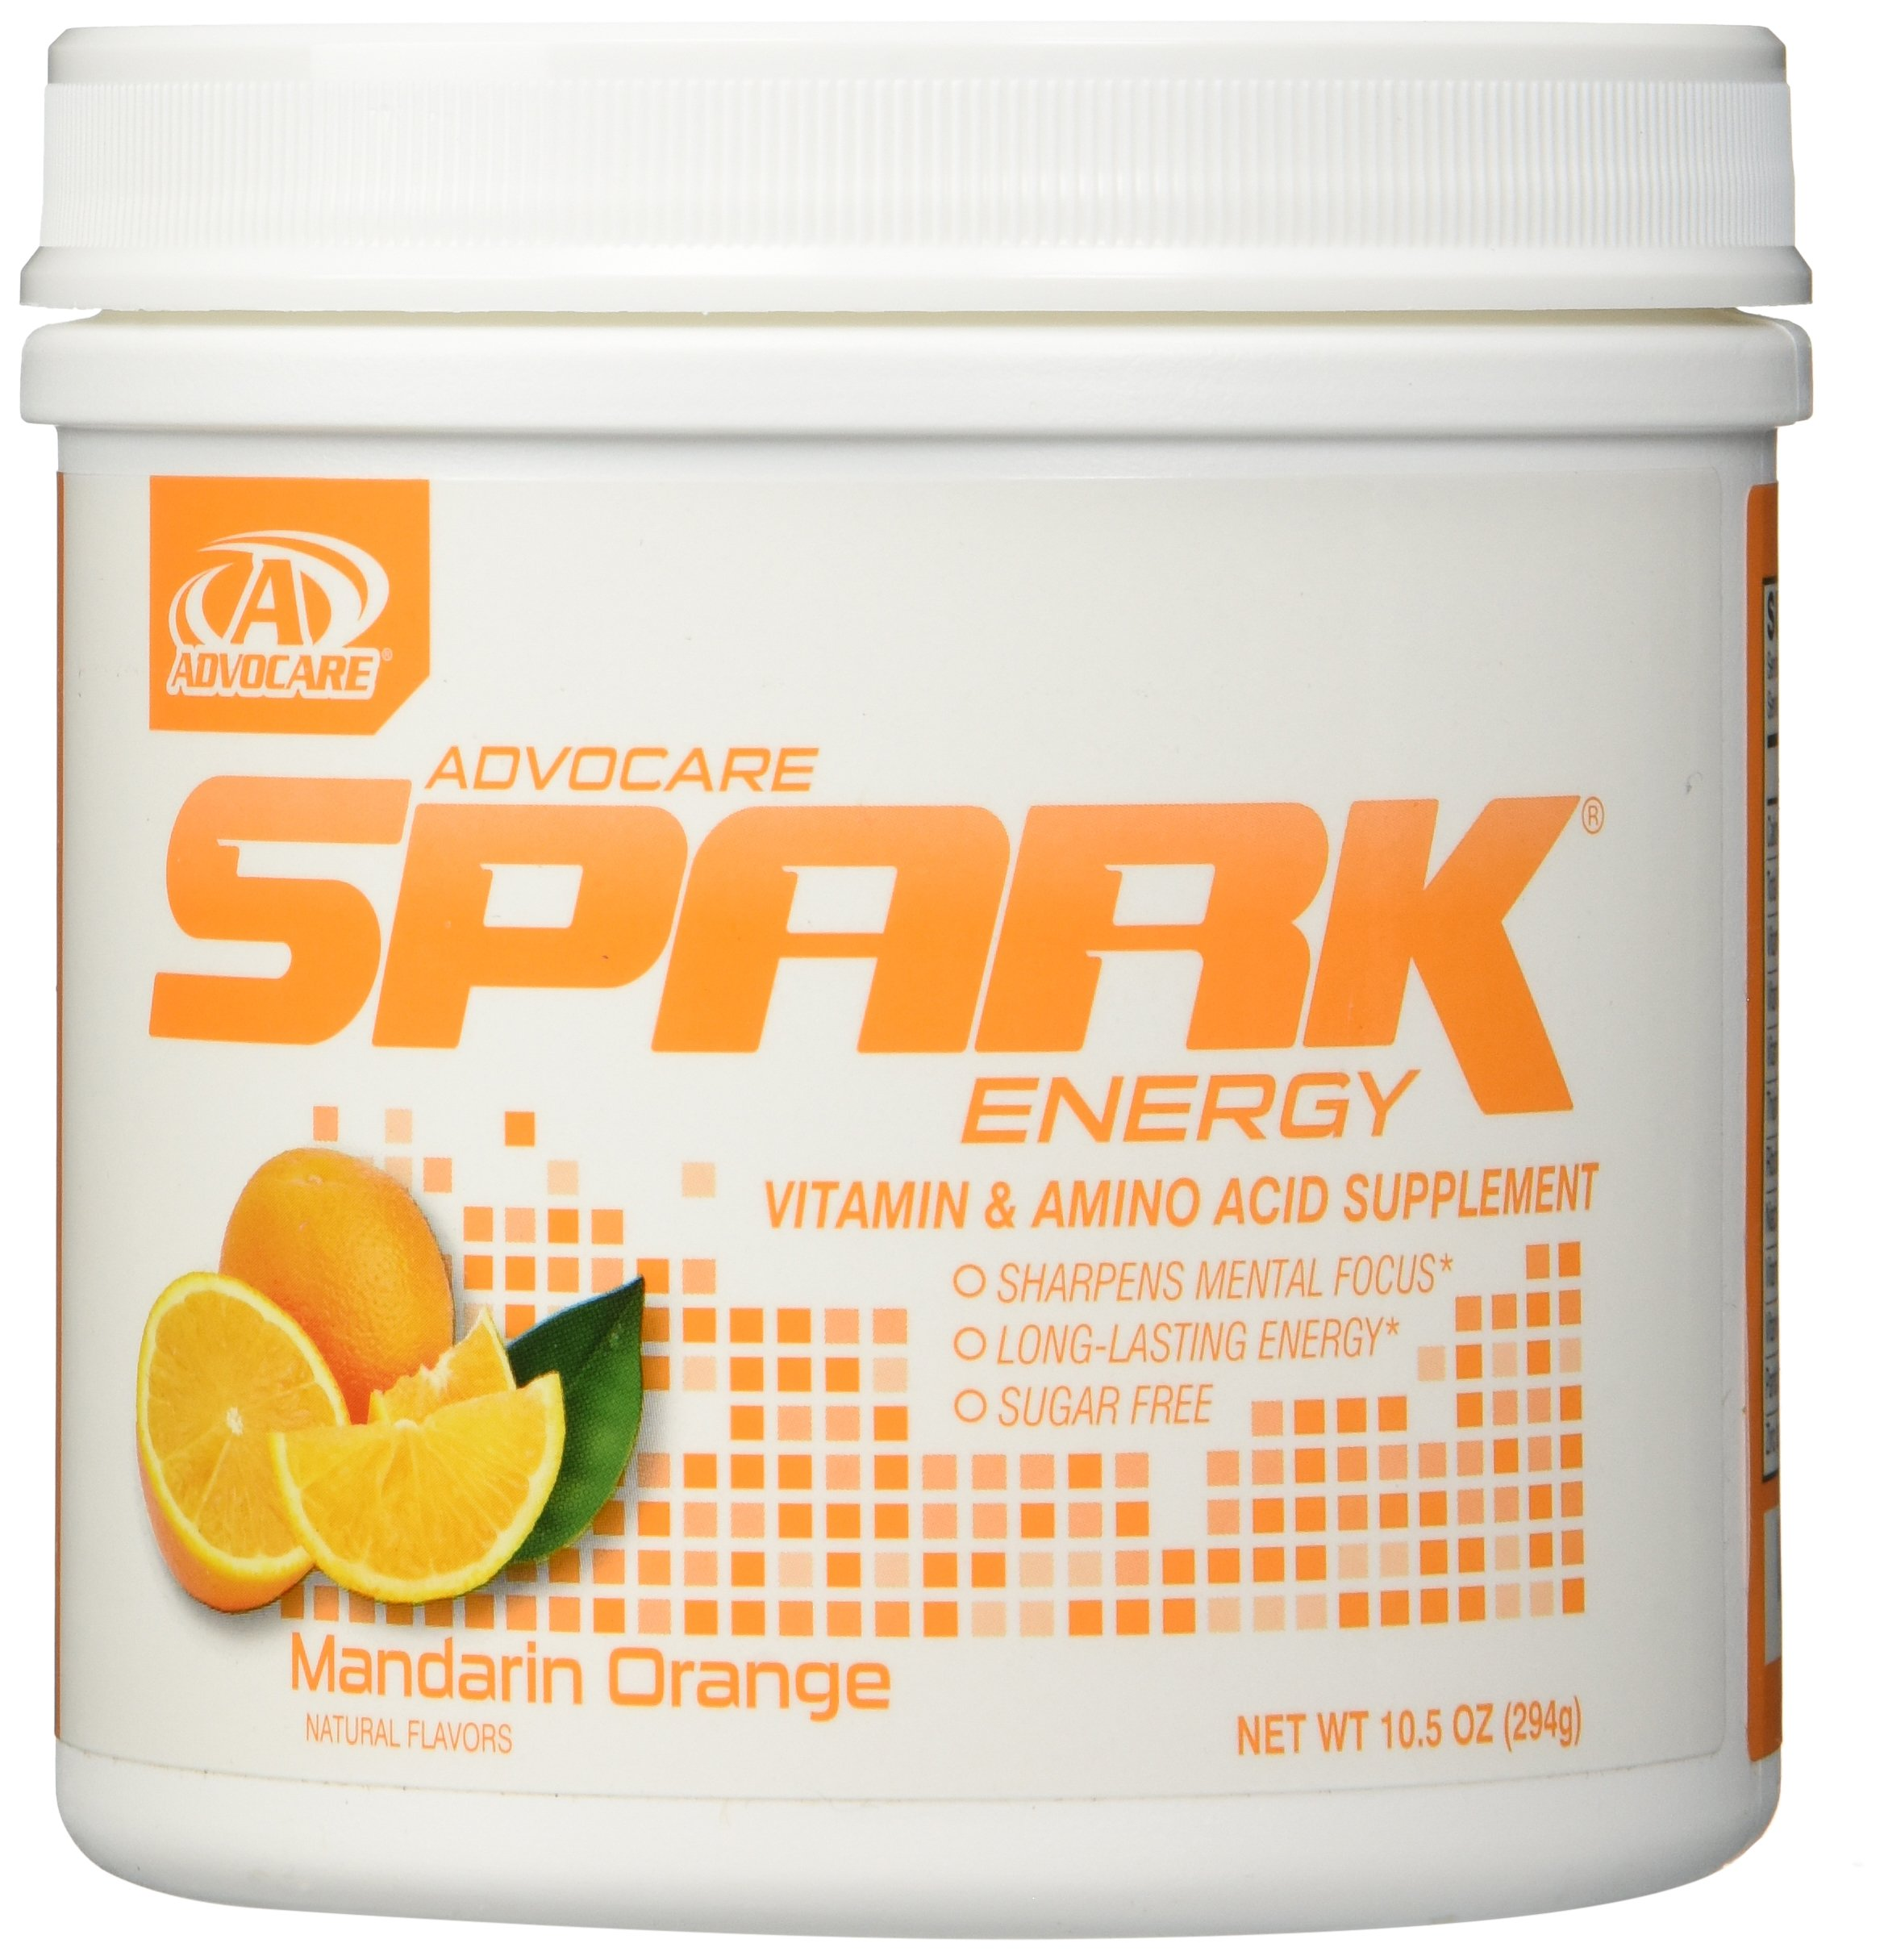 AdvoCare Mandarin Orange Spark Canister 10.5 Ounce - New